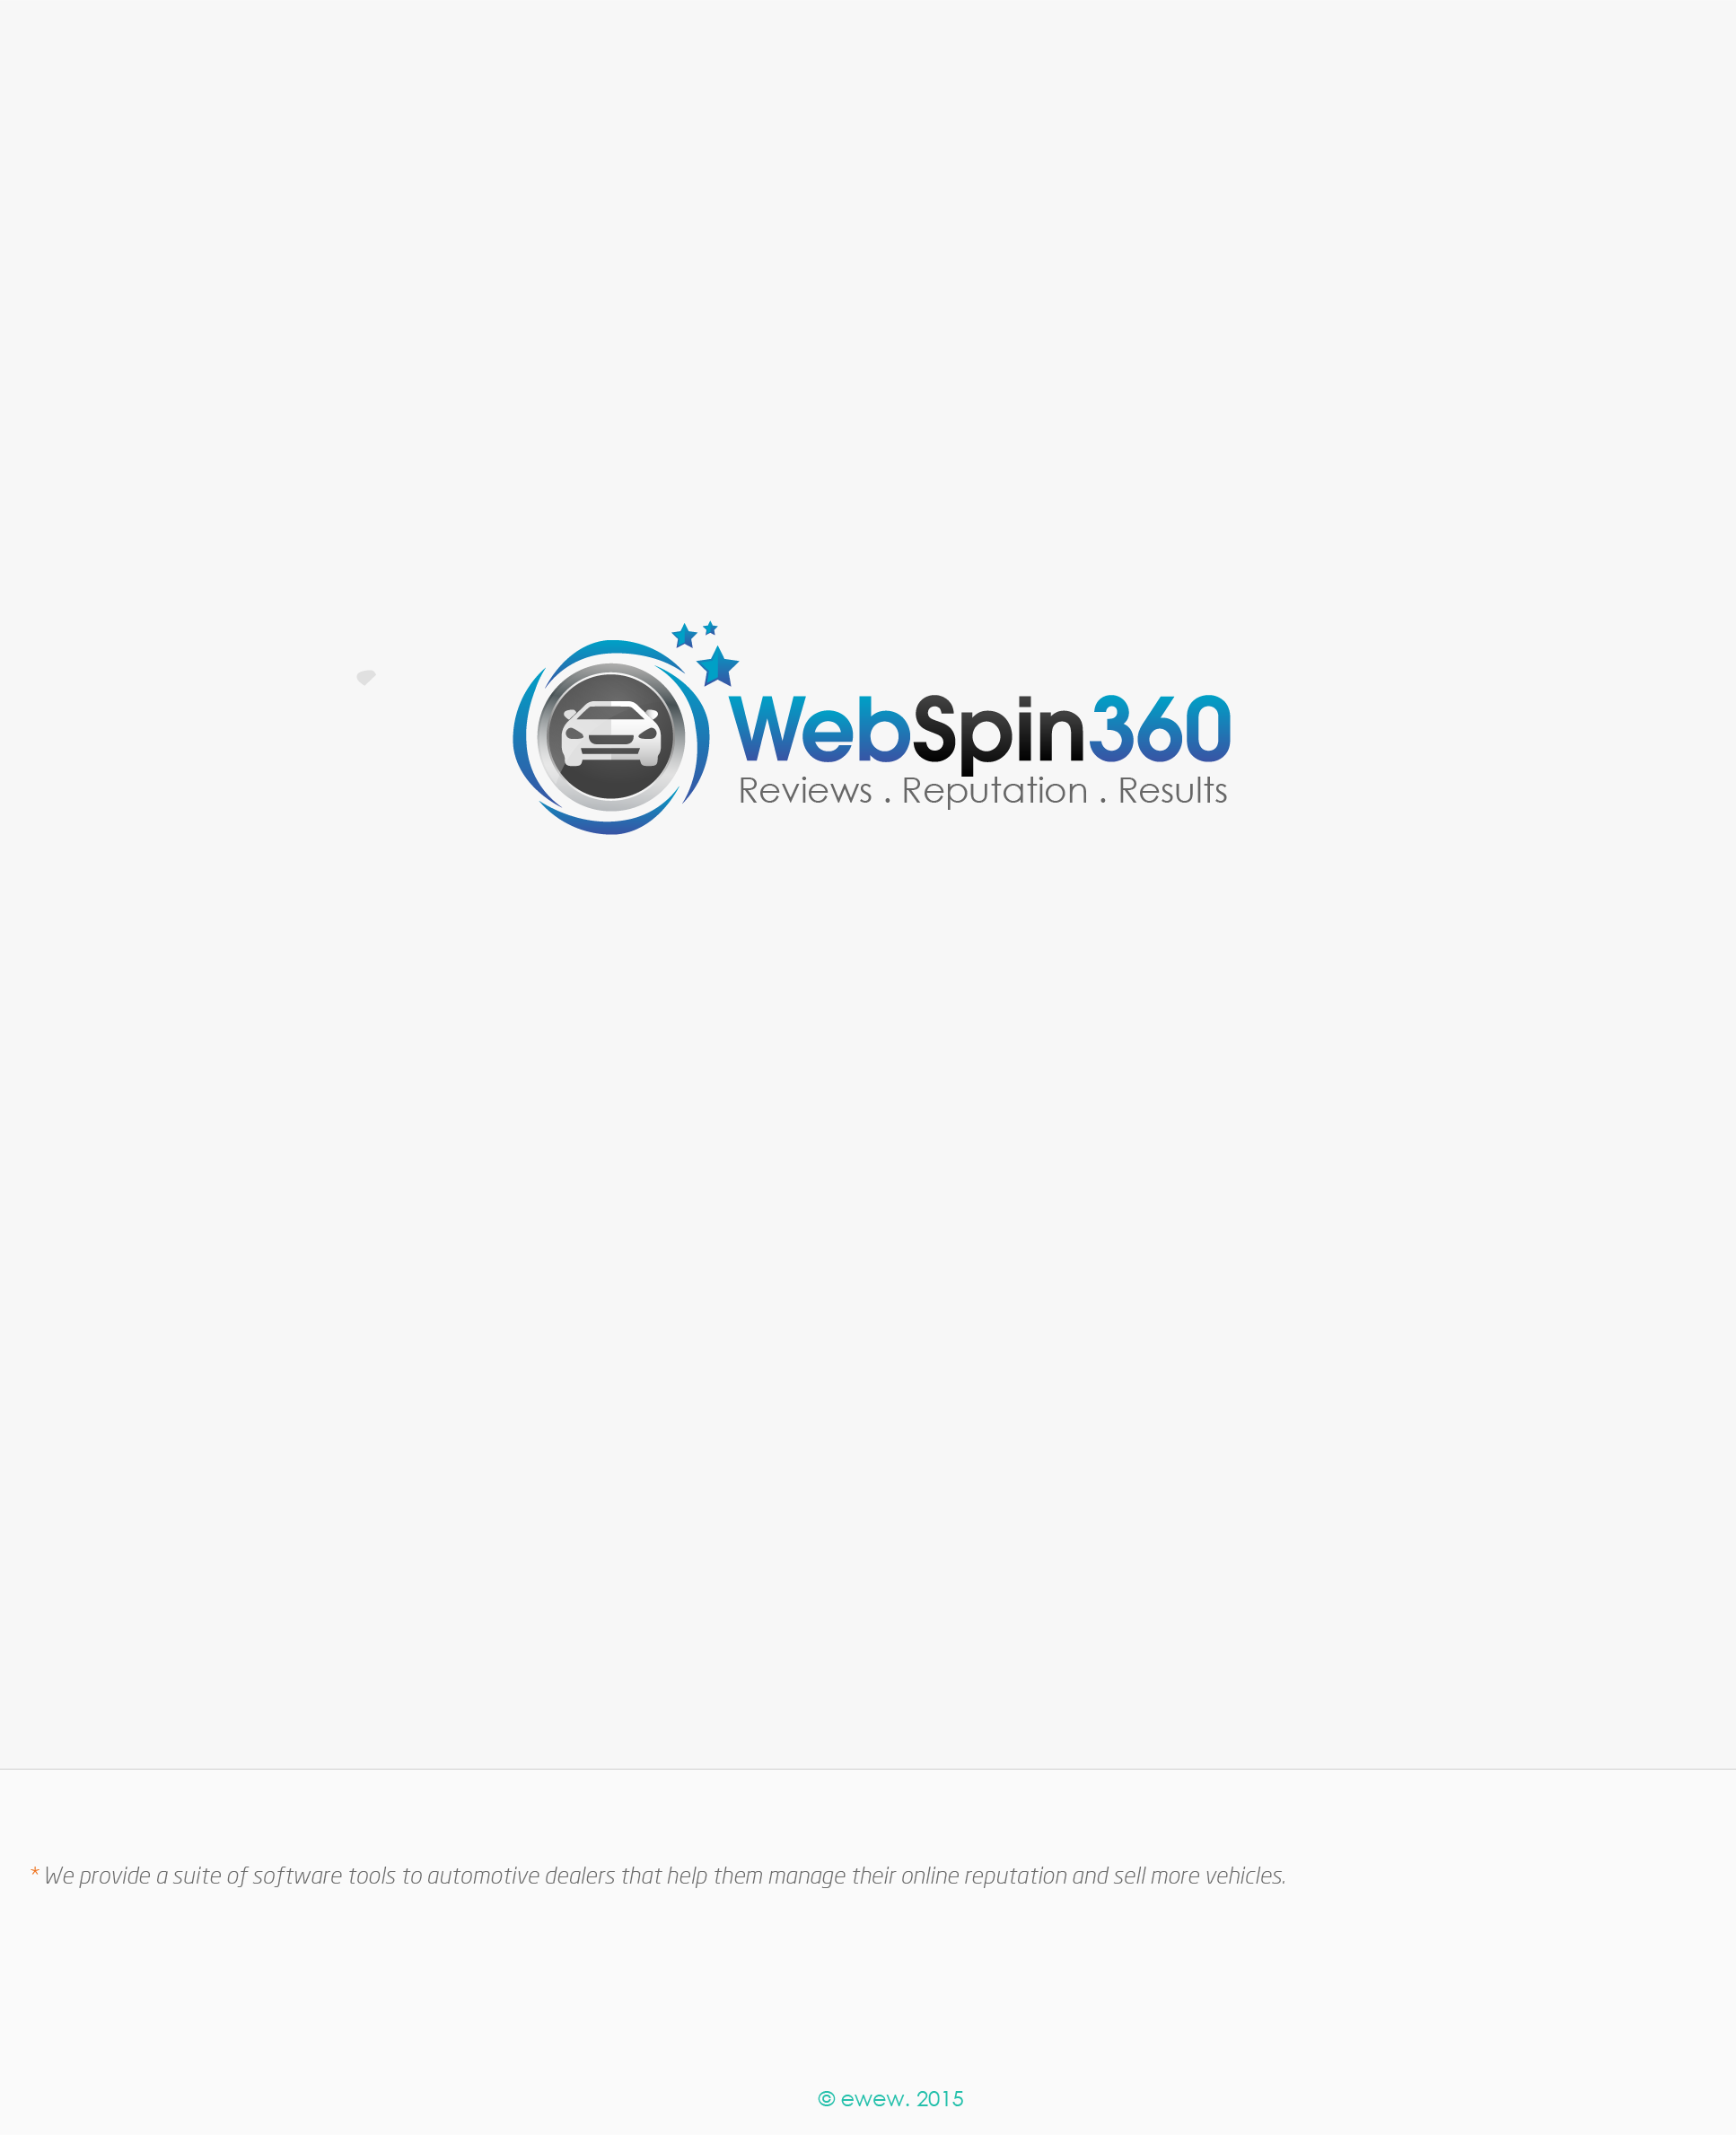 Create a killer logo for WebSpin 360 - Without using a globe :-)